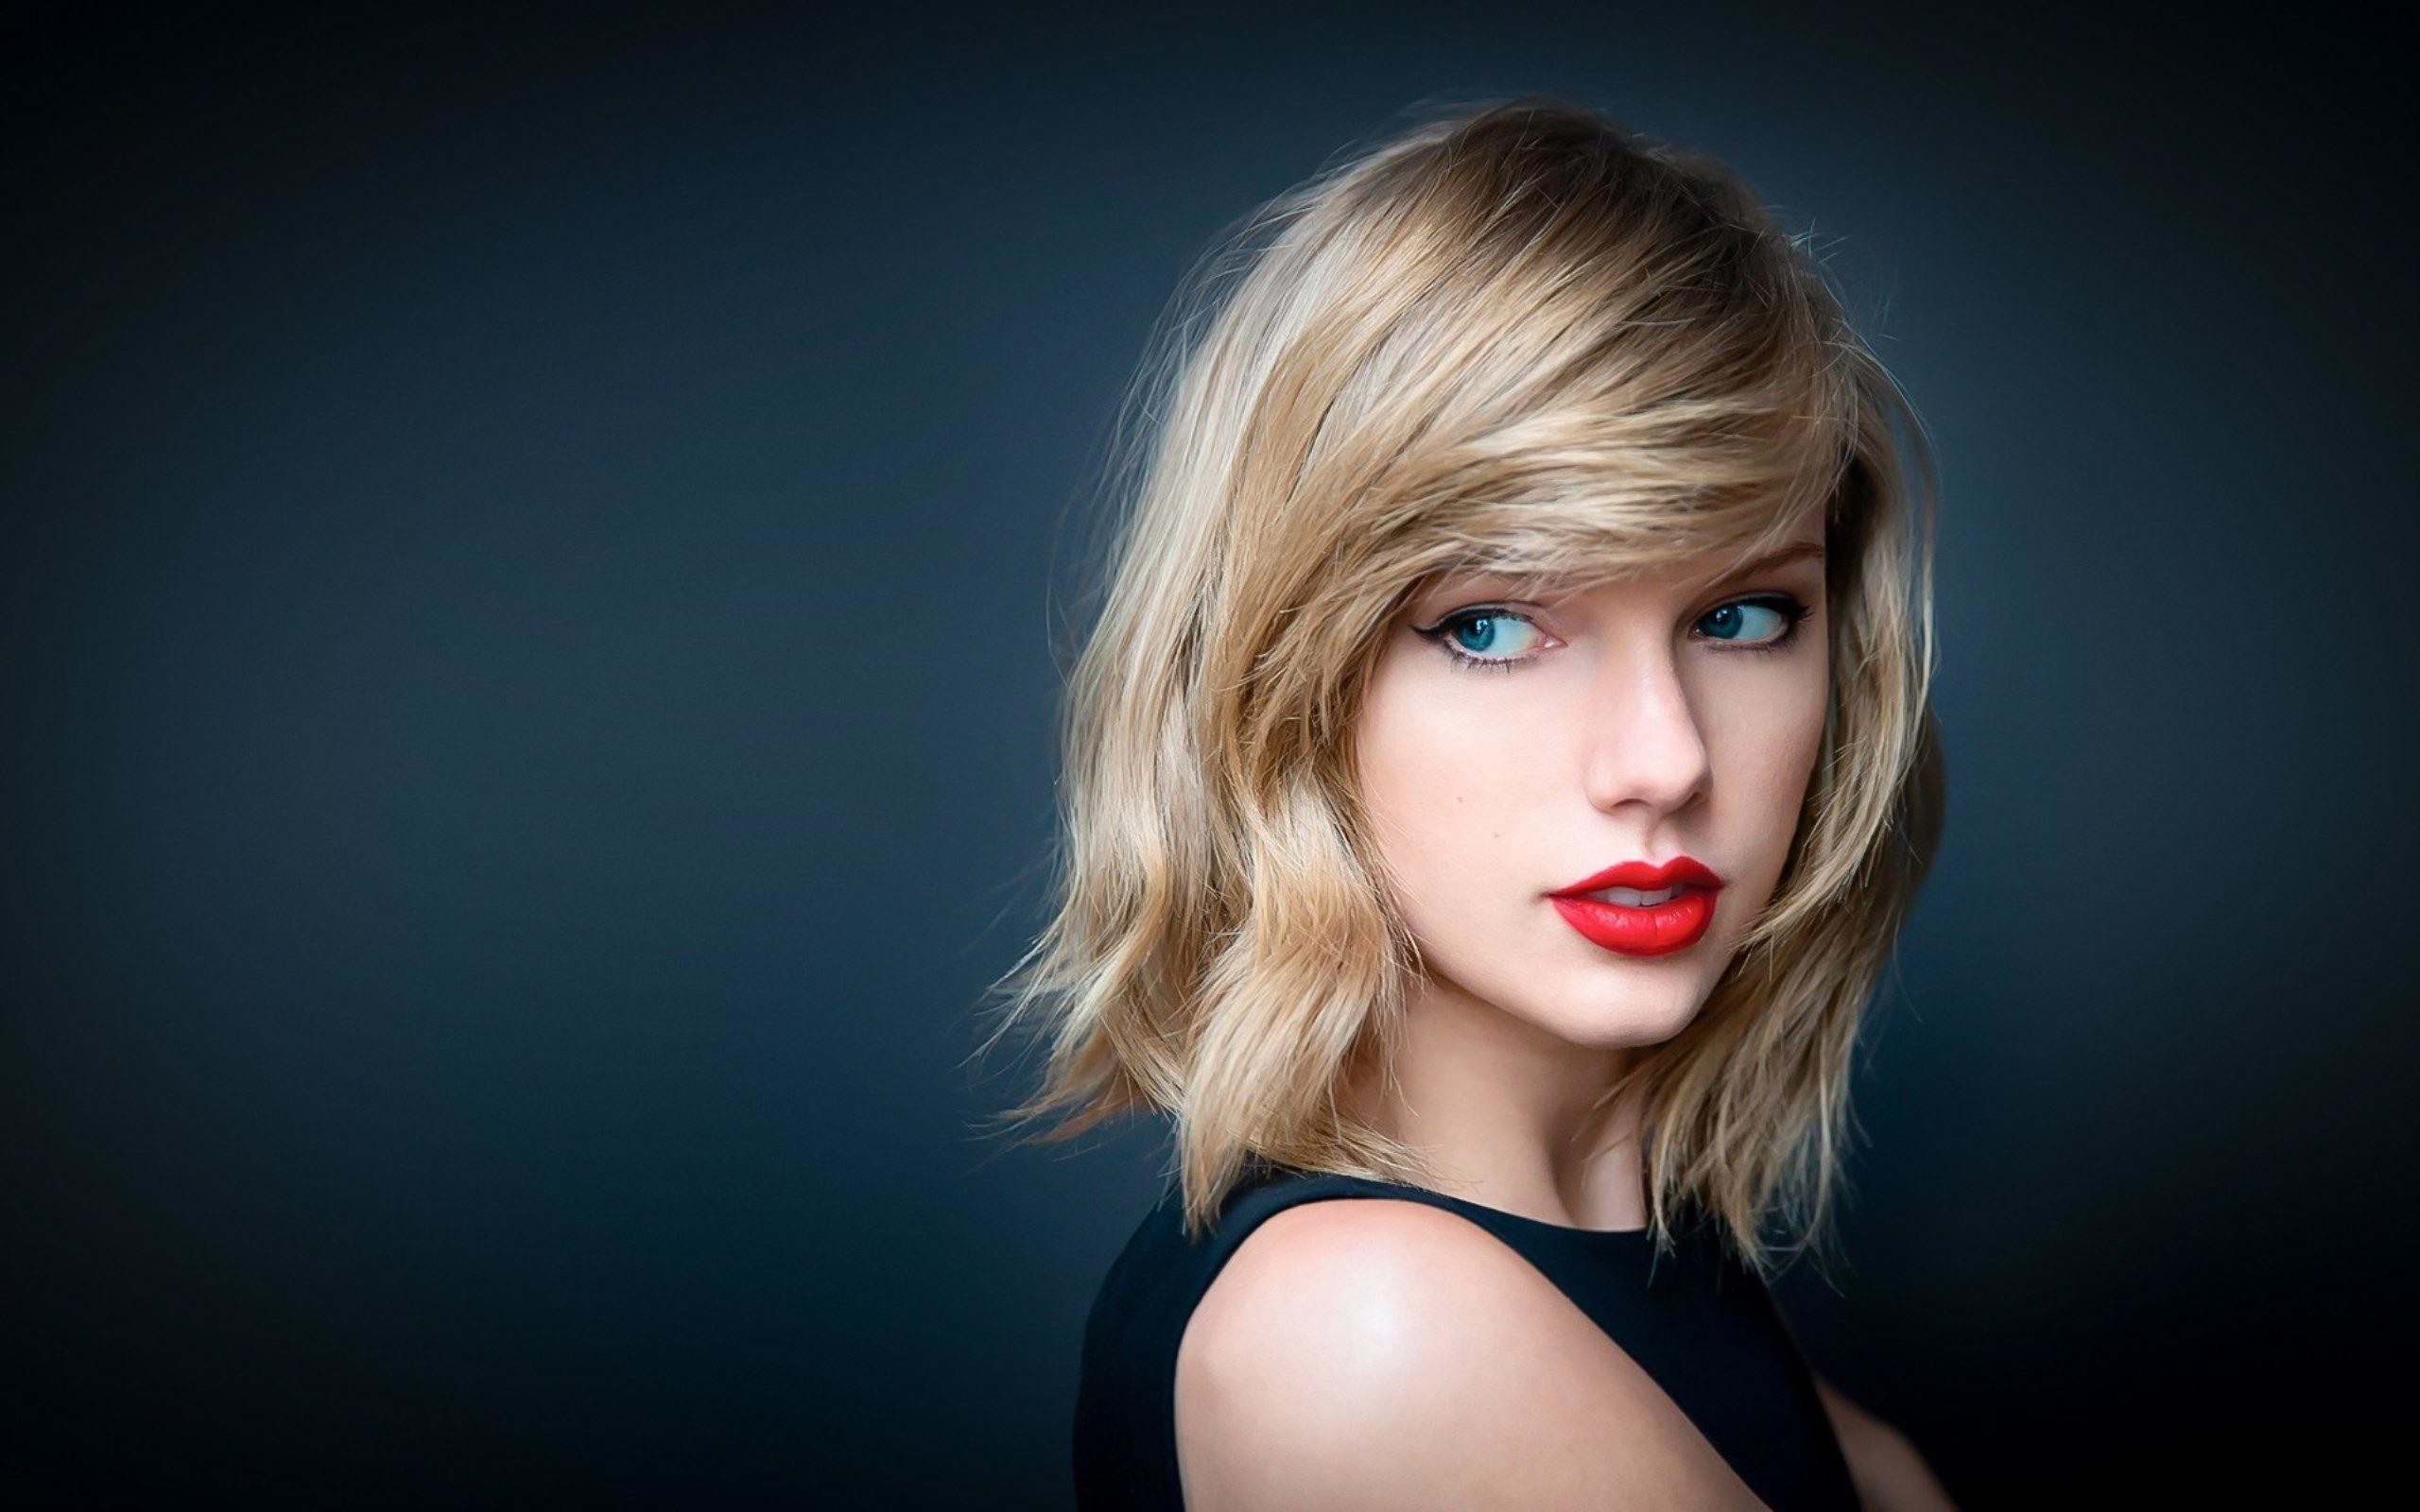 Taylor Swift HD Desktop Wallpaper (75+ images).